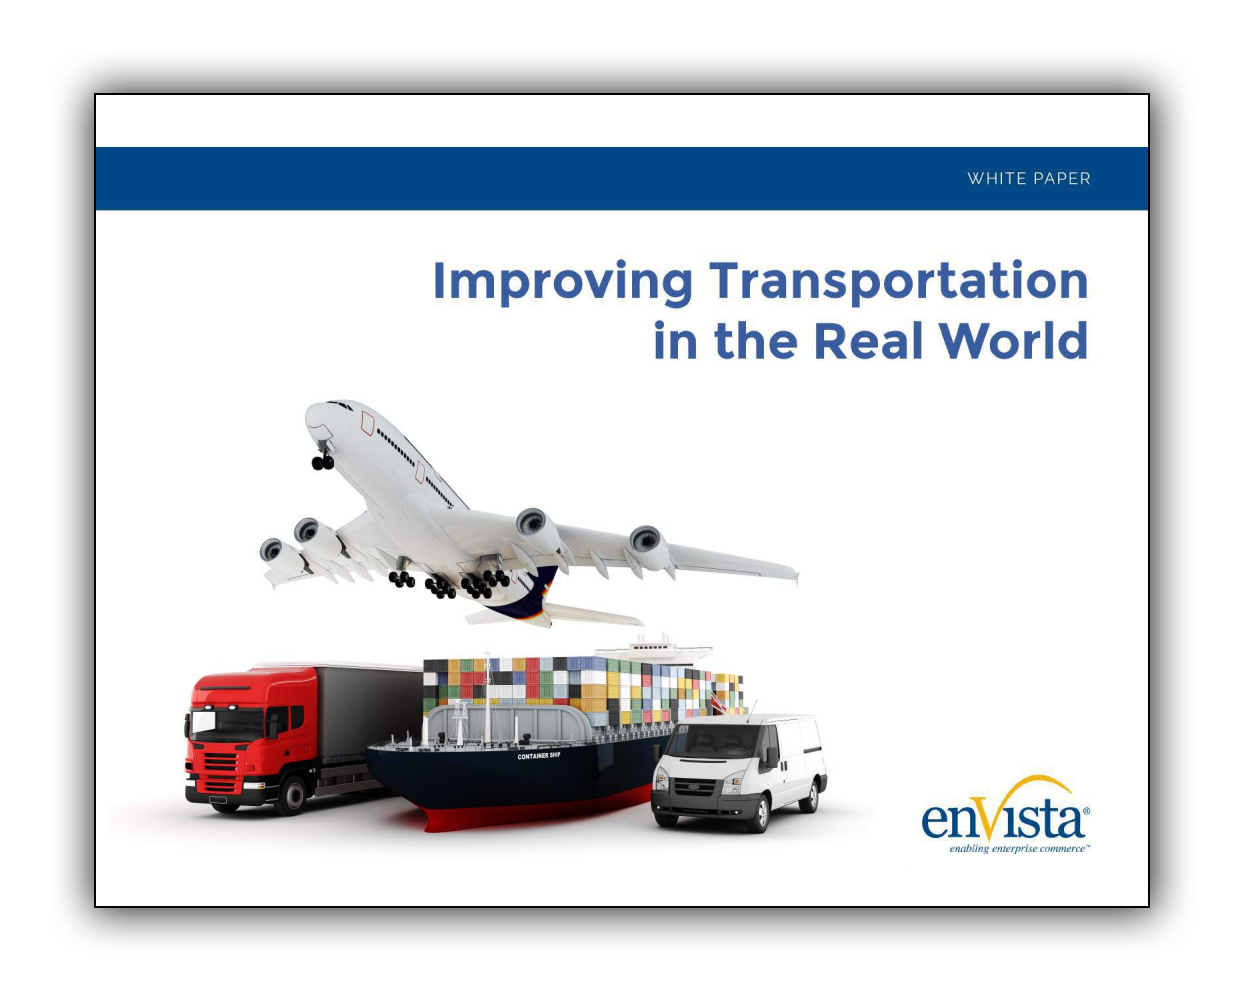 Image_Improving-Transportation-in-the-real-world.png